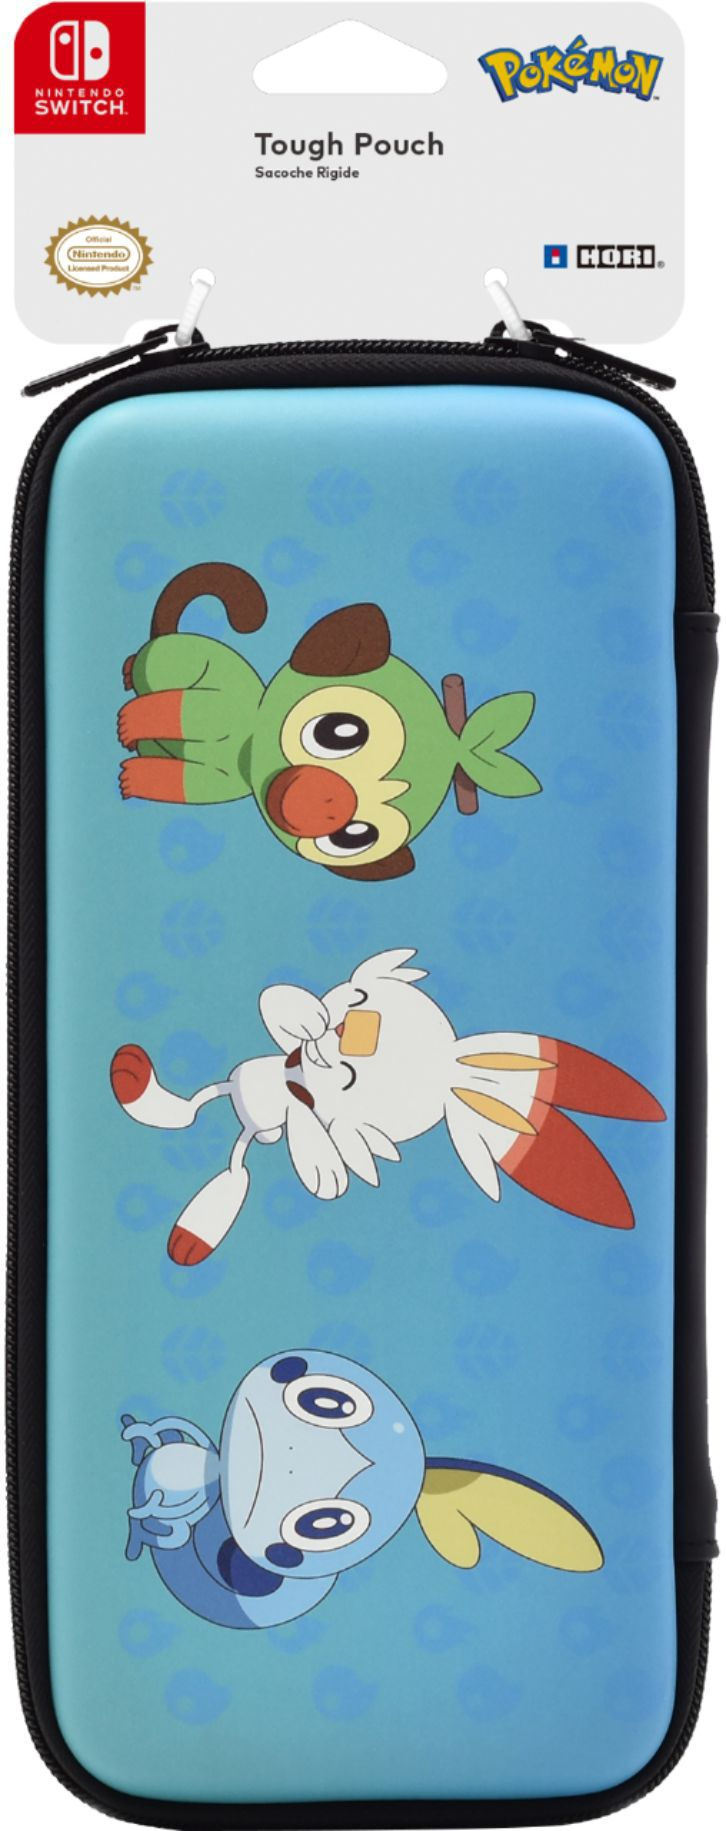 Case Hard Pouch Pokemon Sword Shield - Nintendo Switch